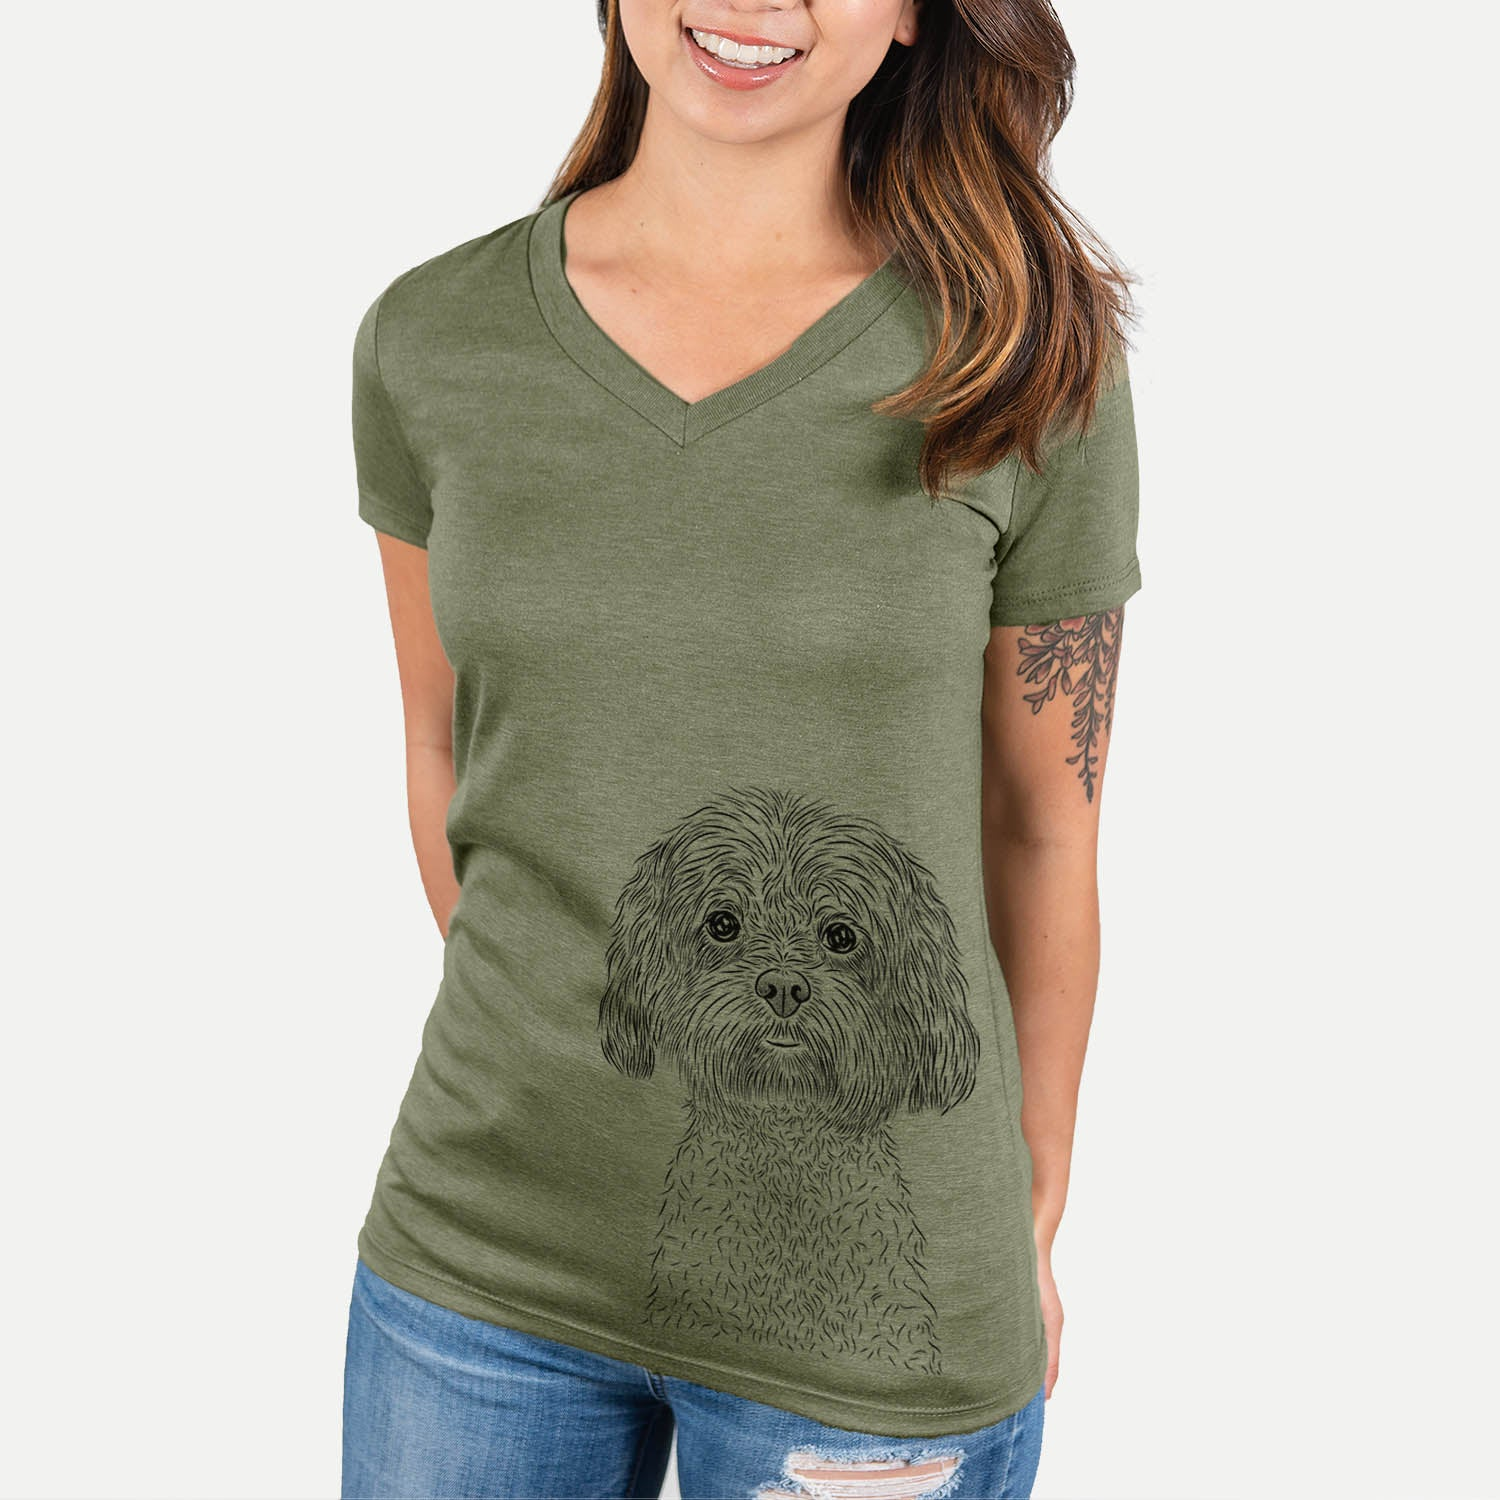 Lane the Lhasa Apso - Women's Modern Fit V-neck Shirt